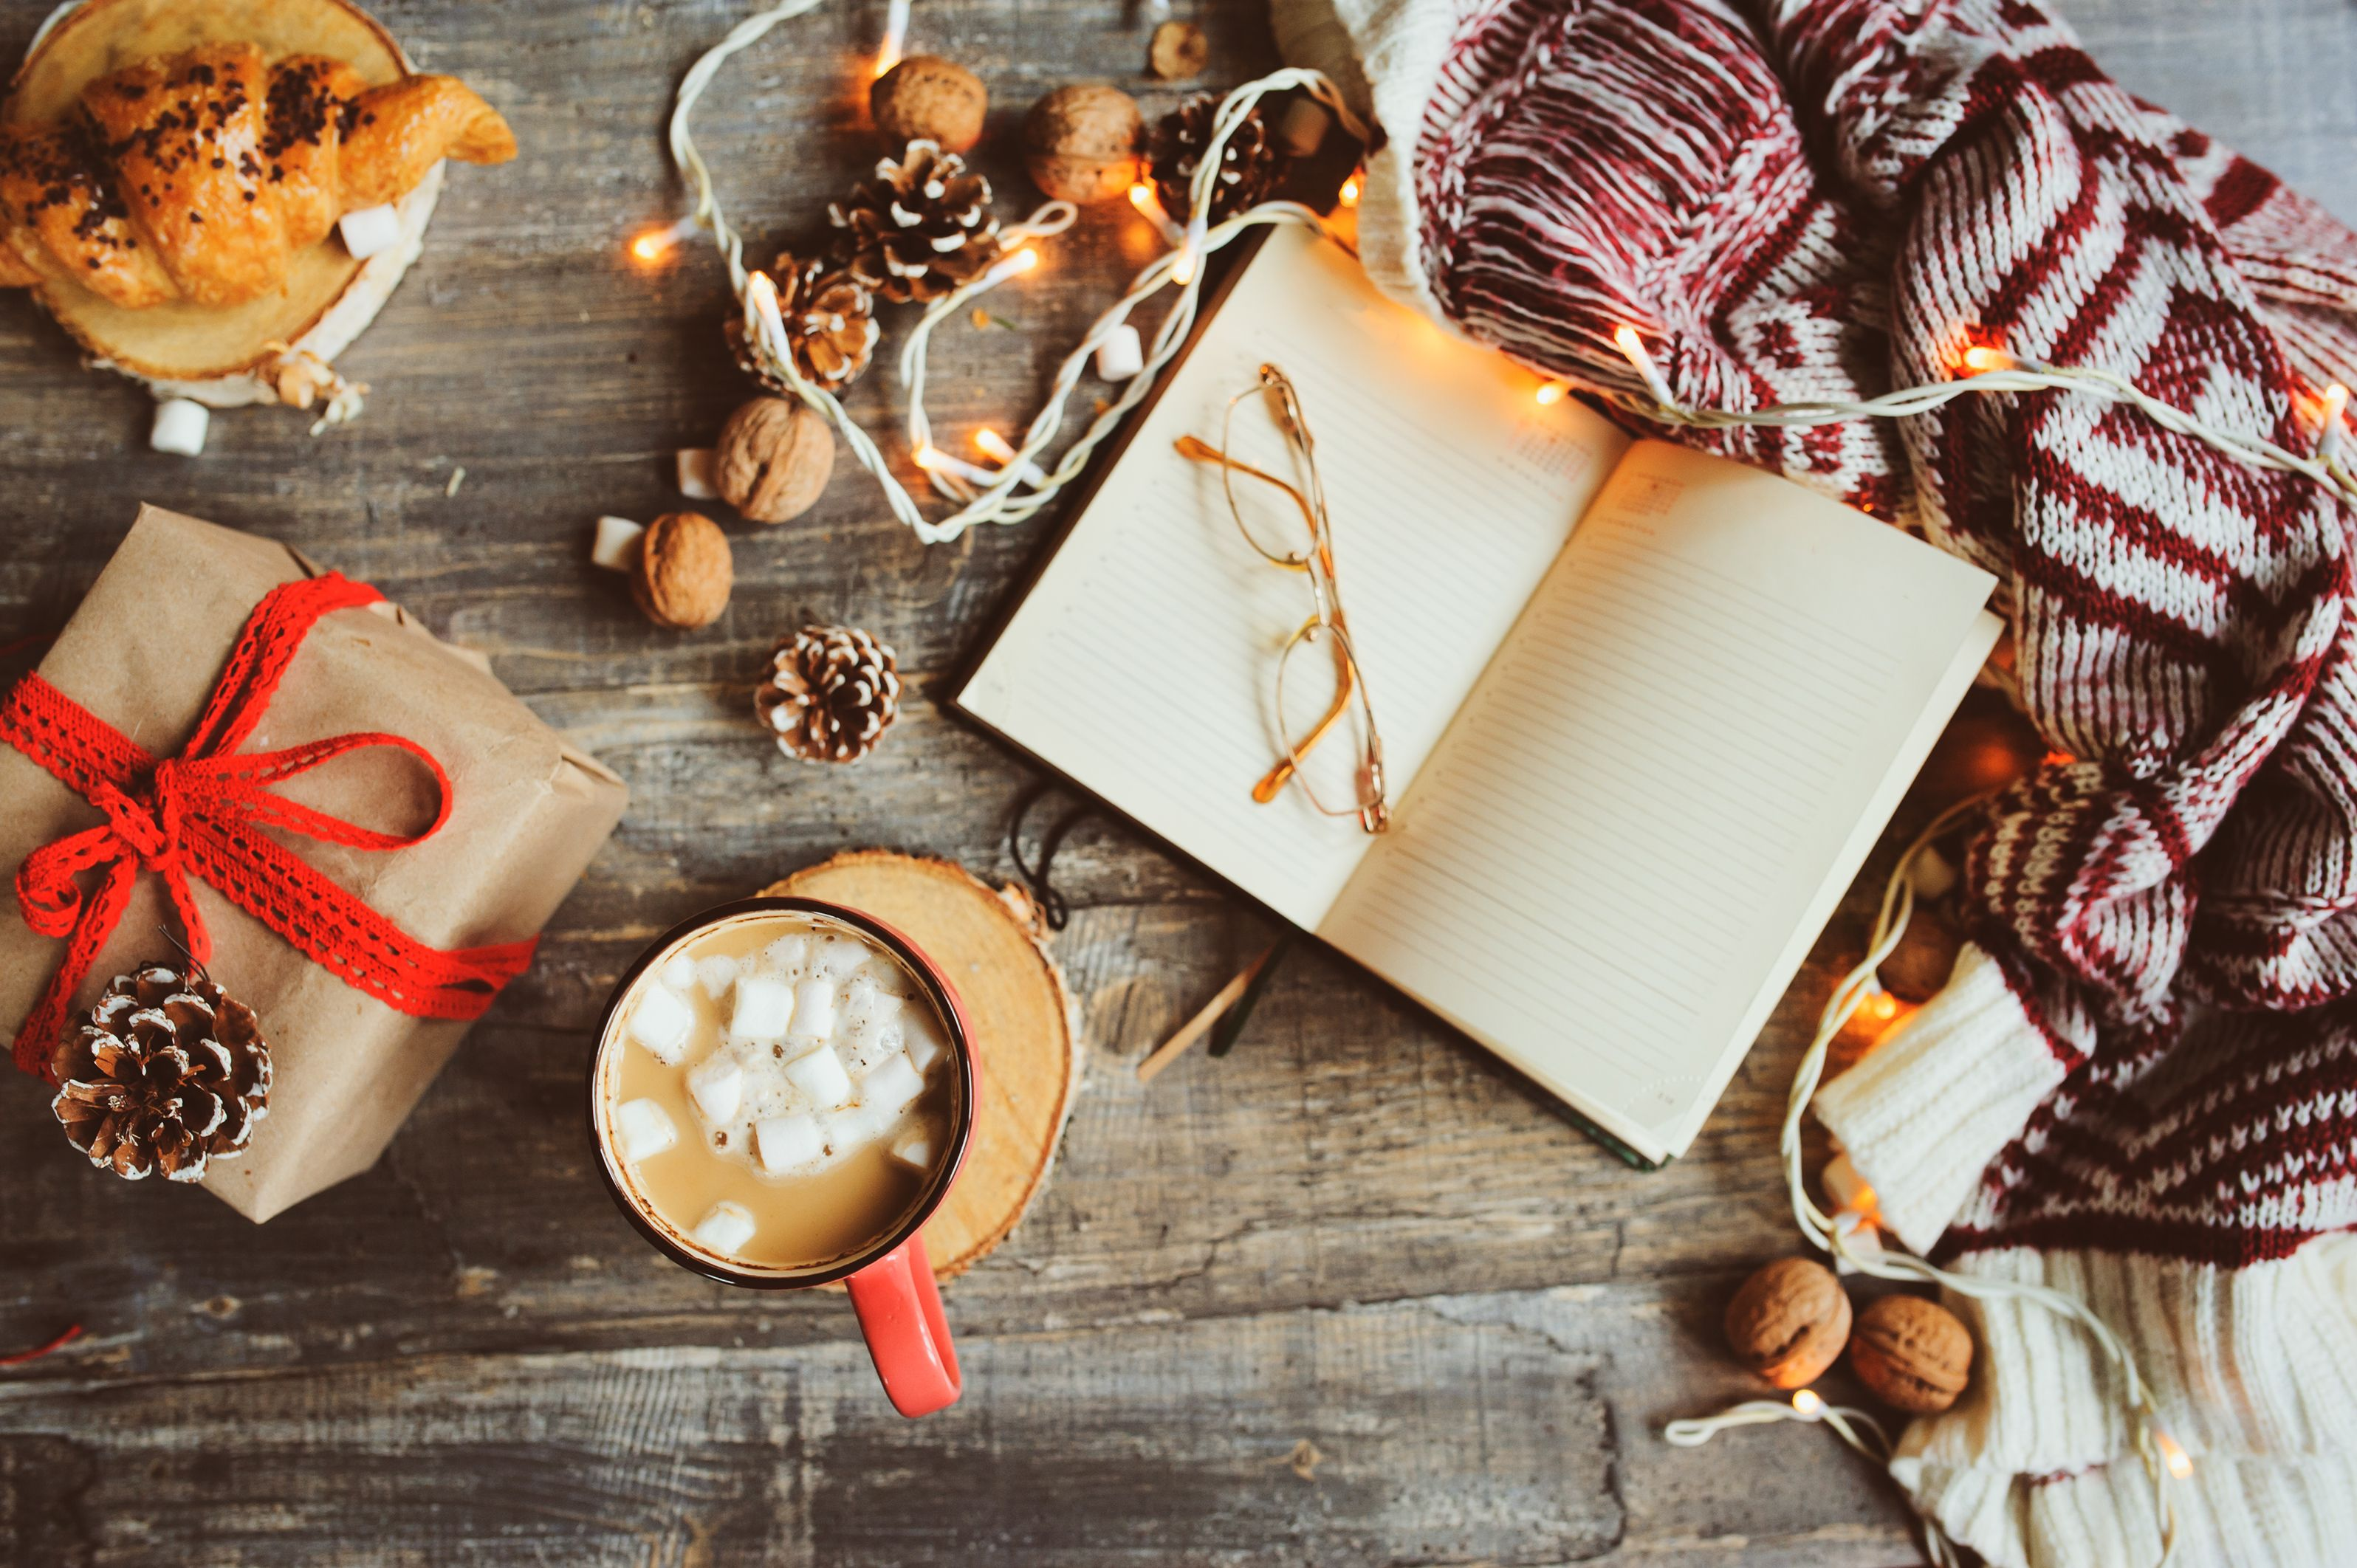 26 Christmas Instagram Captions For Your Holiday Photos